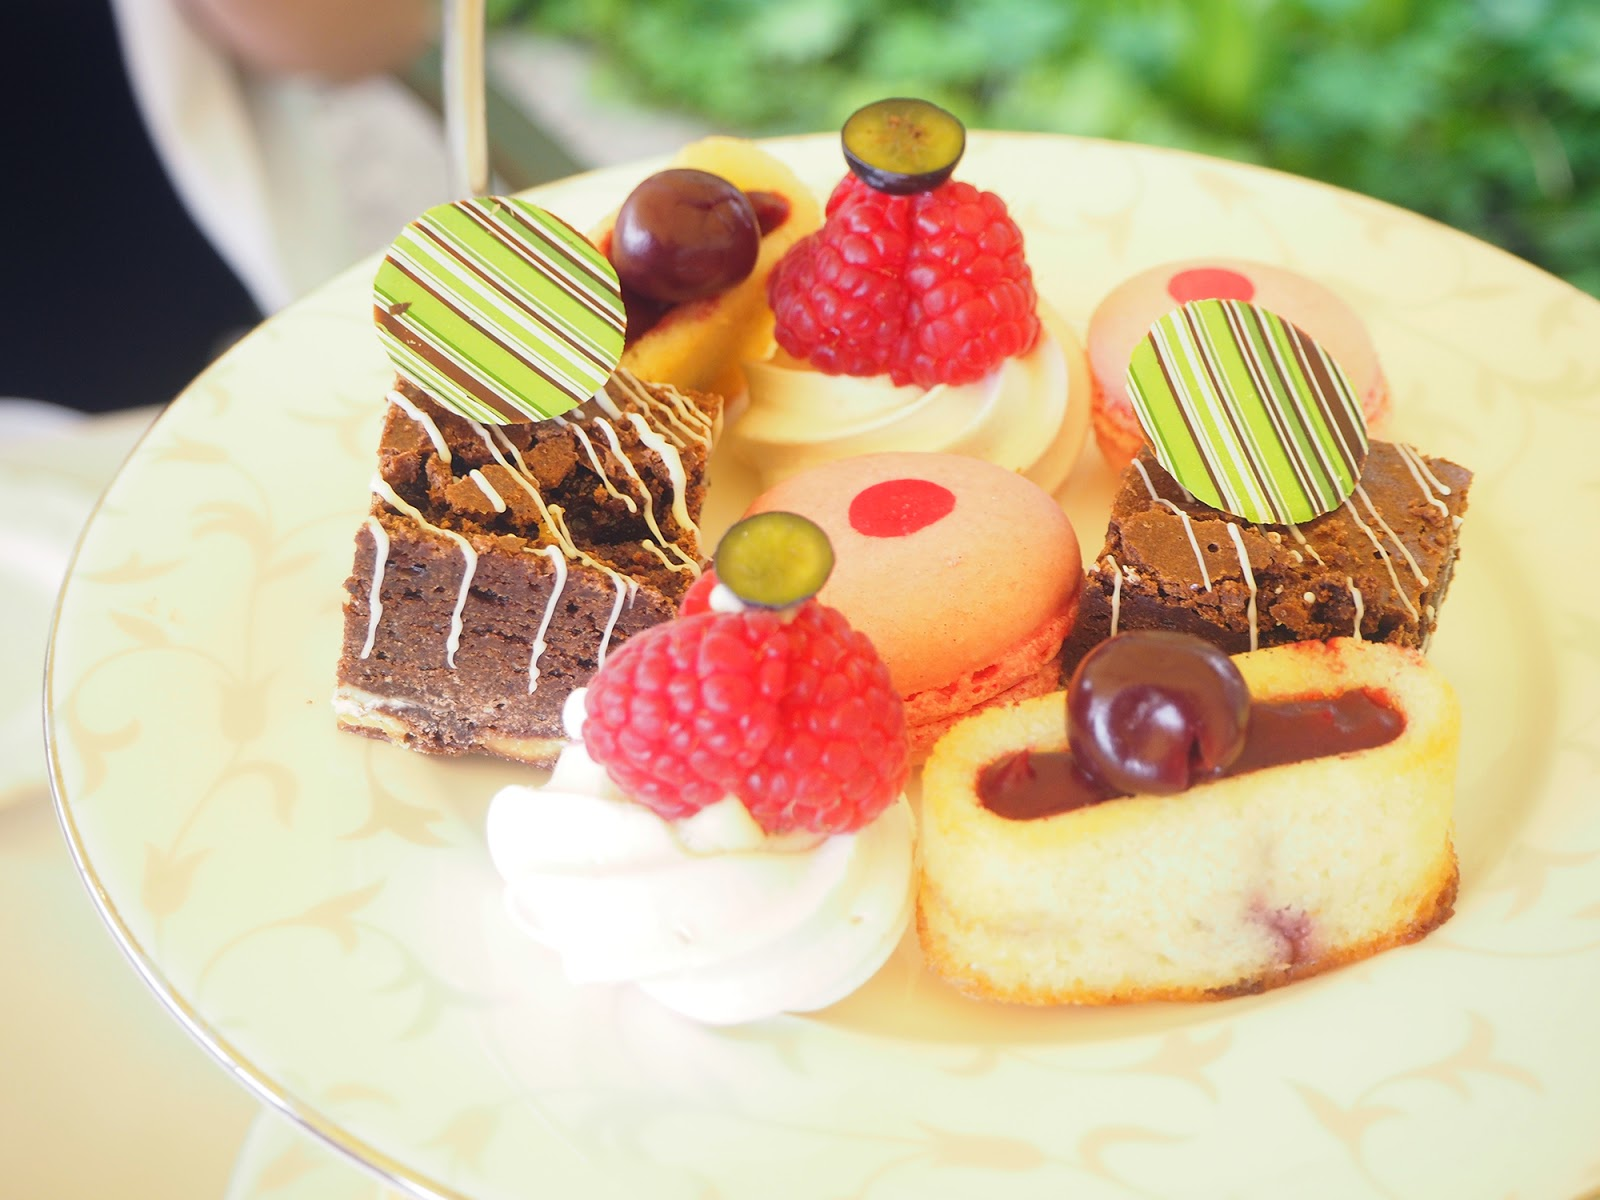 Afternoon tea review at South Lodge in Horsham - afternoon tea cakes